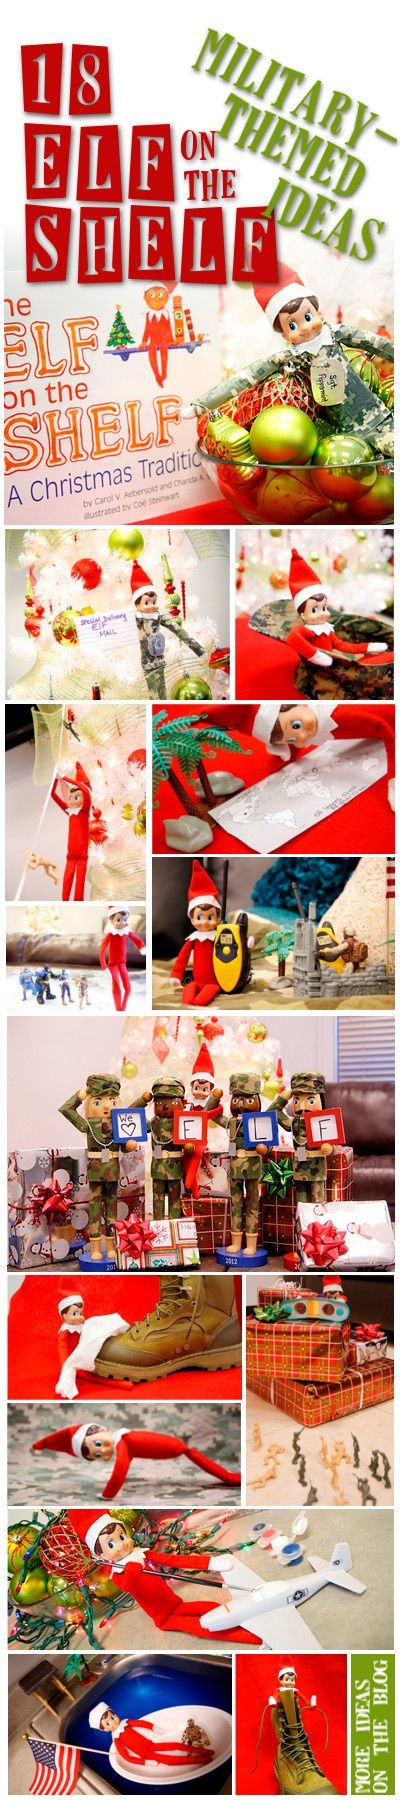 Elf on the Shelf Visits Military Families too.     Check out all our military themed Elf on the Shelf ideas on the blog!